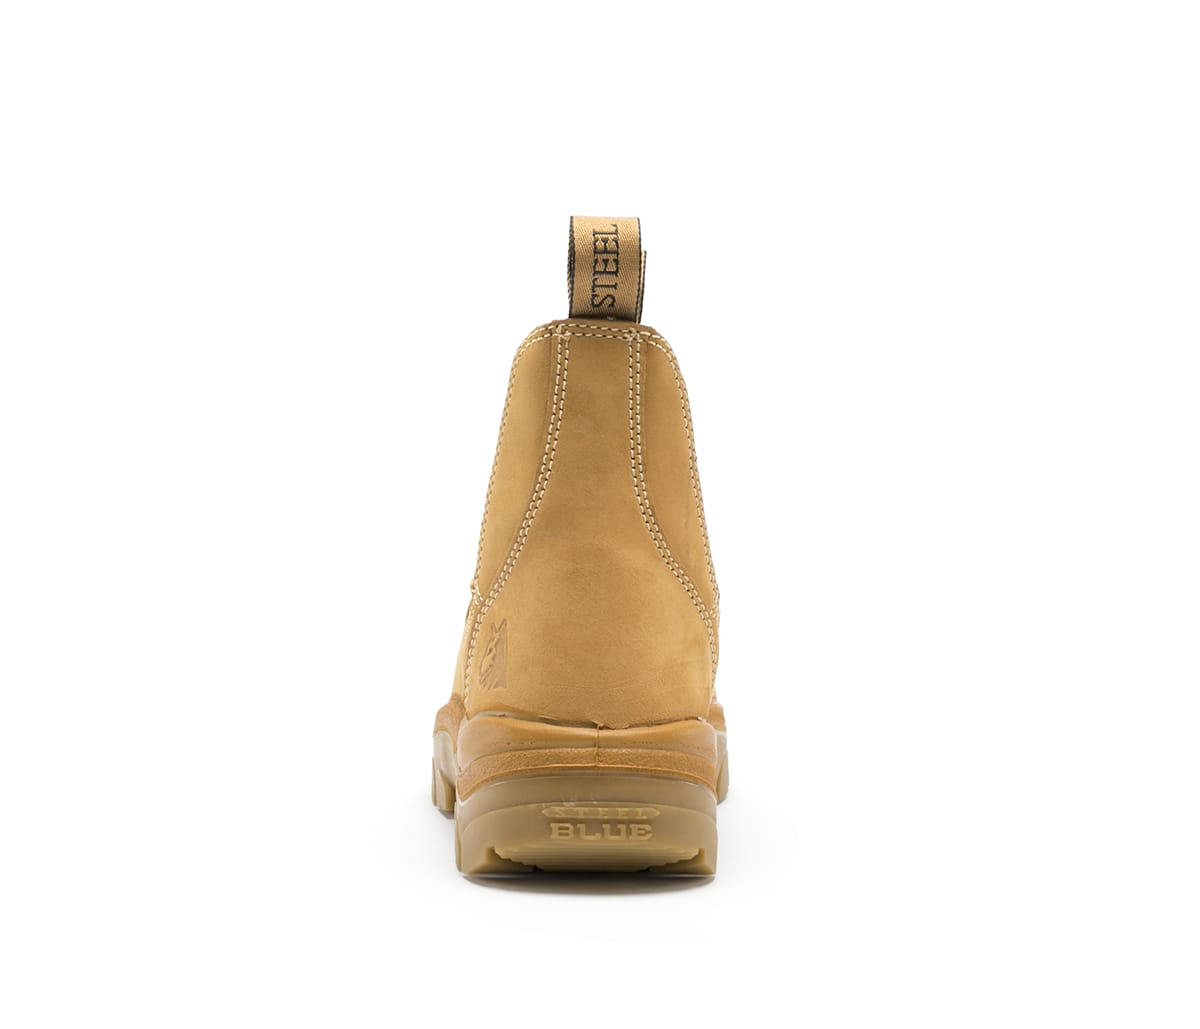 Hobart: TPU/Bump Cap - Wheat